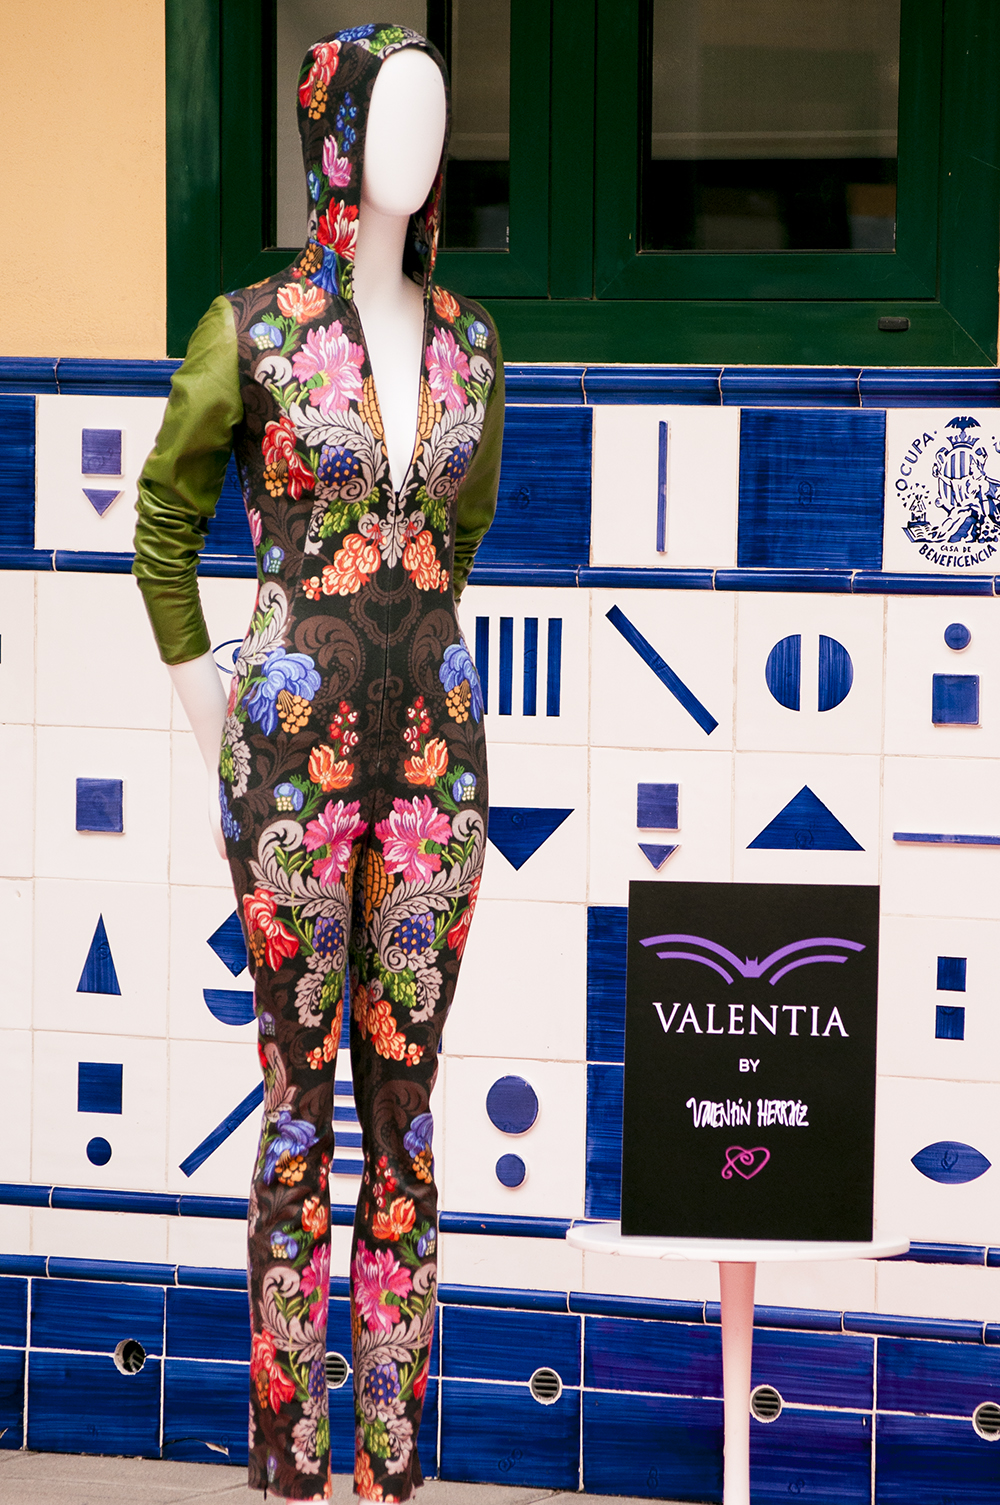 somethingfashion valencia spain bloggers influencers runway streetstyle pasareladelasartes silk unesco road fallera_0724